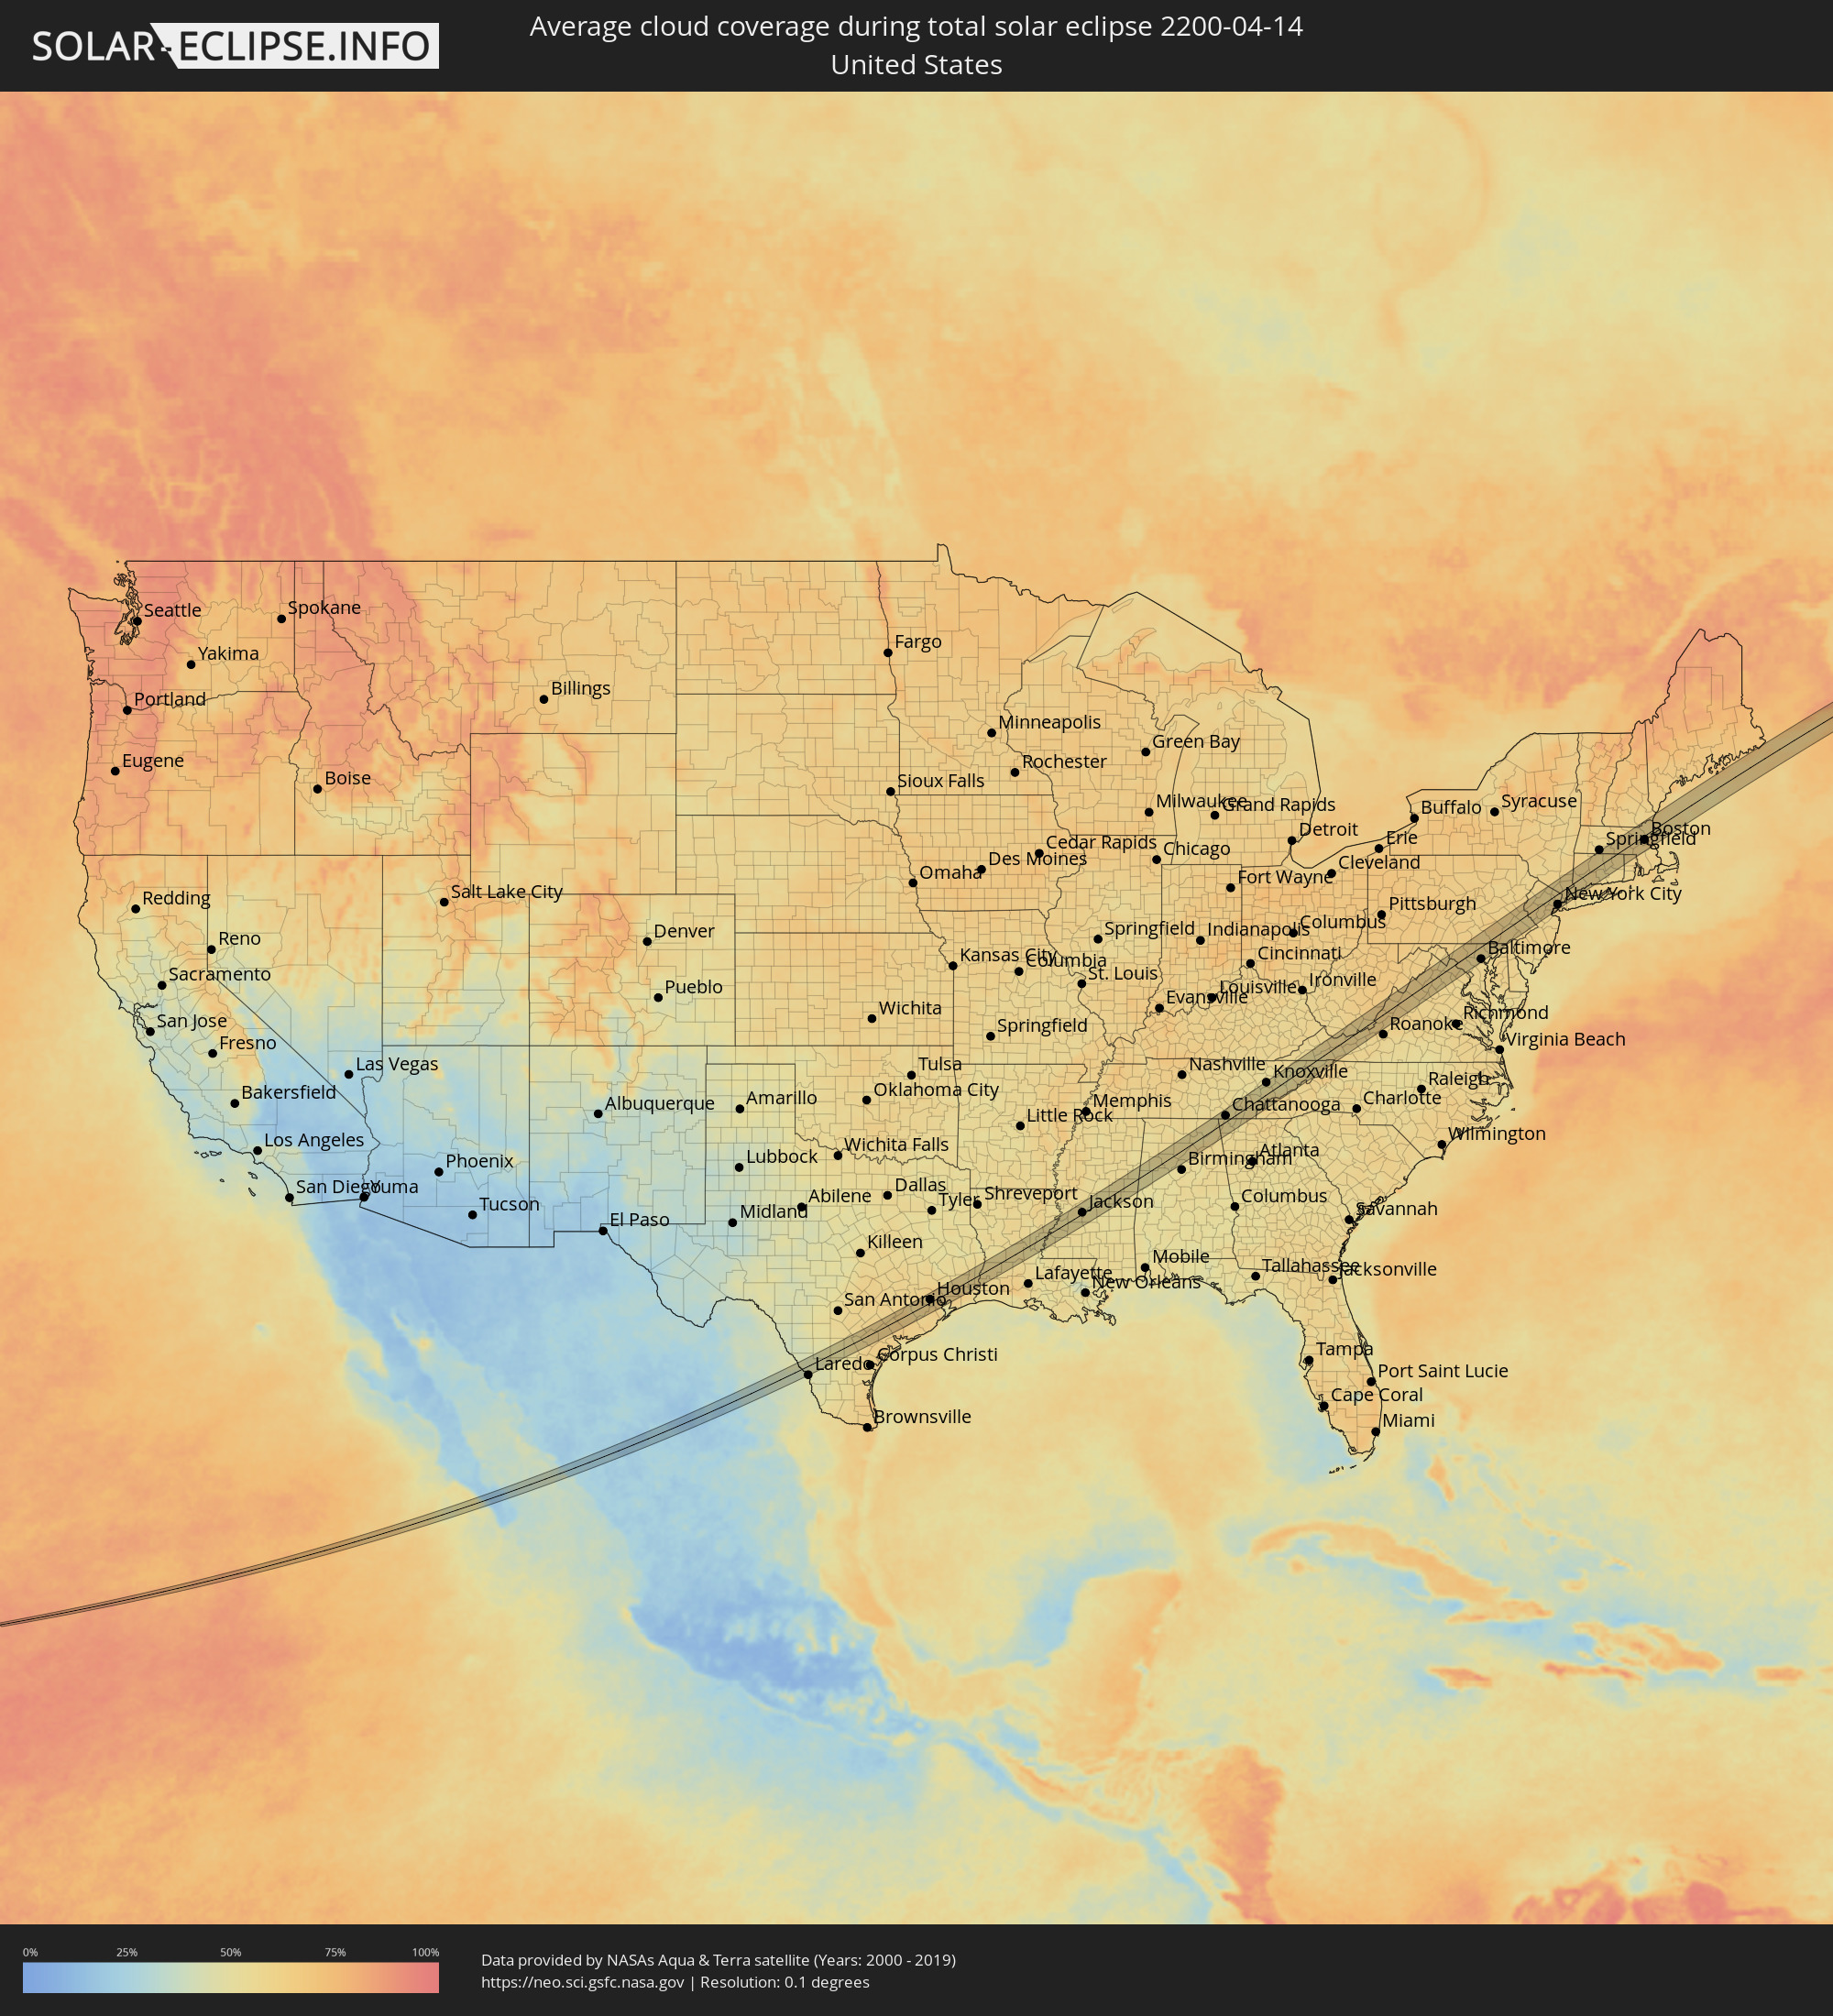 United States Yearly Annual And Monthly Mean Minimum Sea Level - Pressure map of us